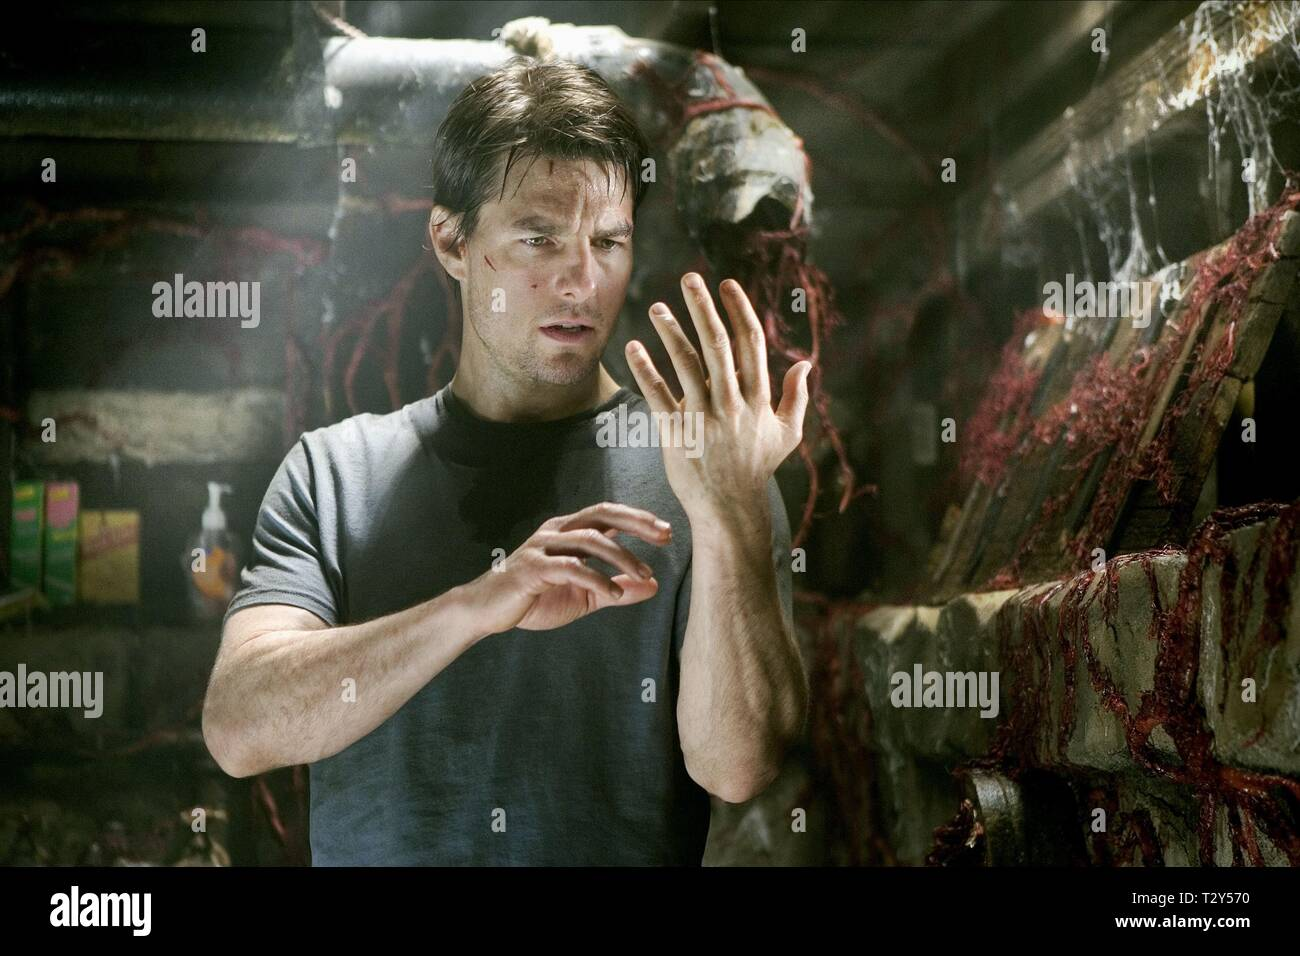 TOM CRUISE, WAR OF THE WORLDS, 2005 - Stock Image